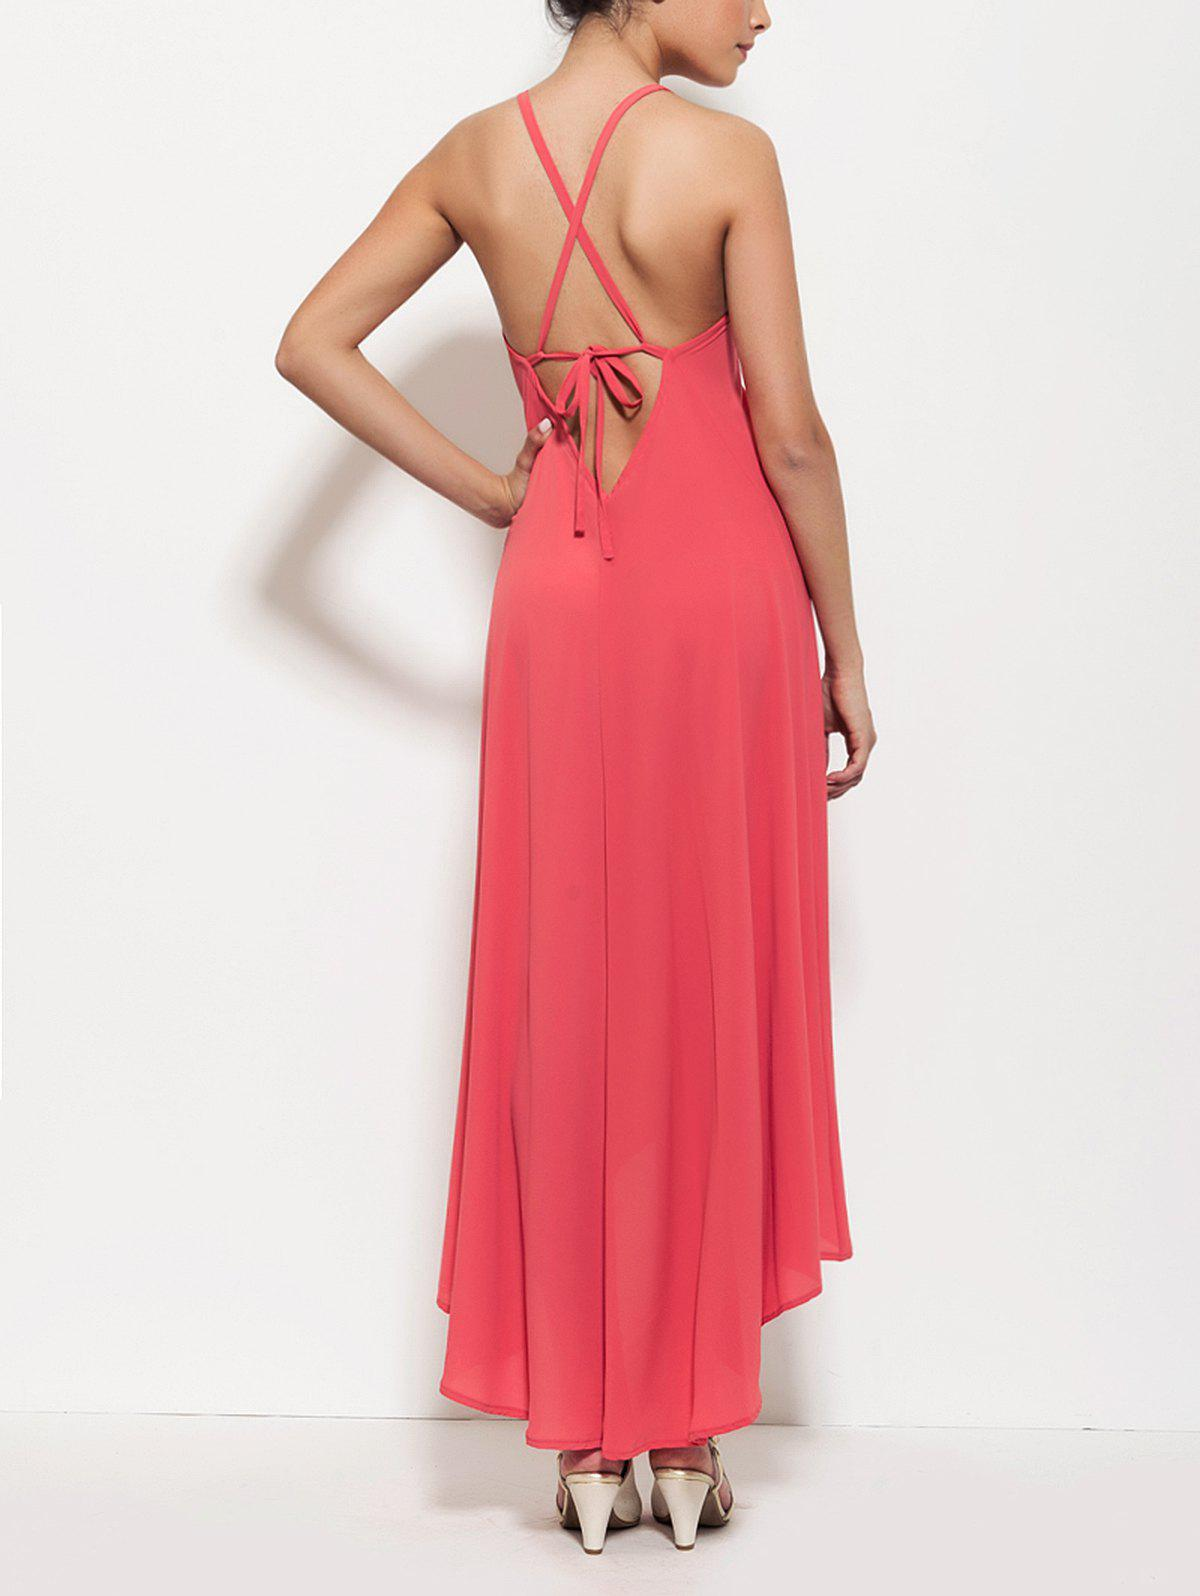 Spaghetti Strap High Low Lace-Up Backless Maxi Dress For Women - ROSE RED XL